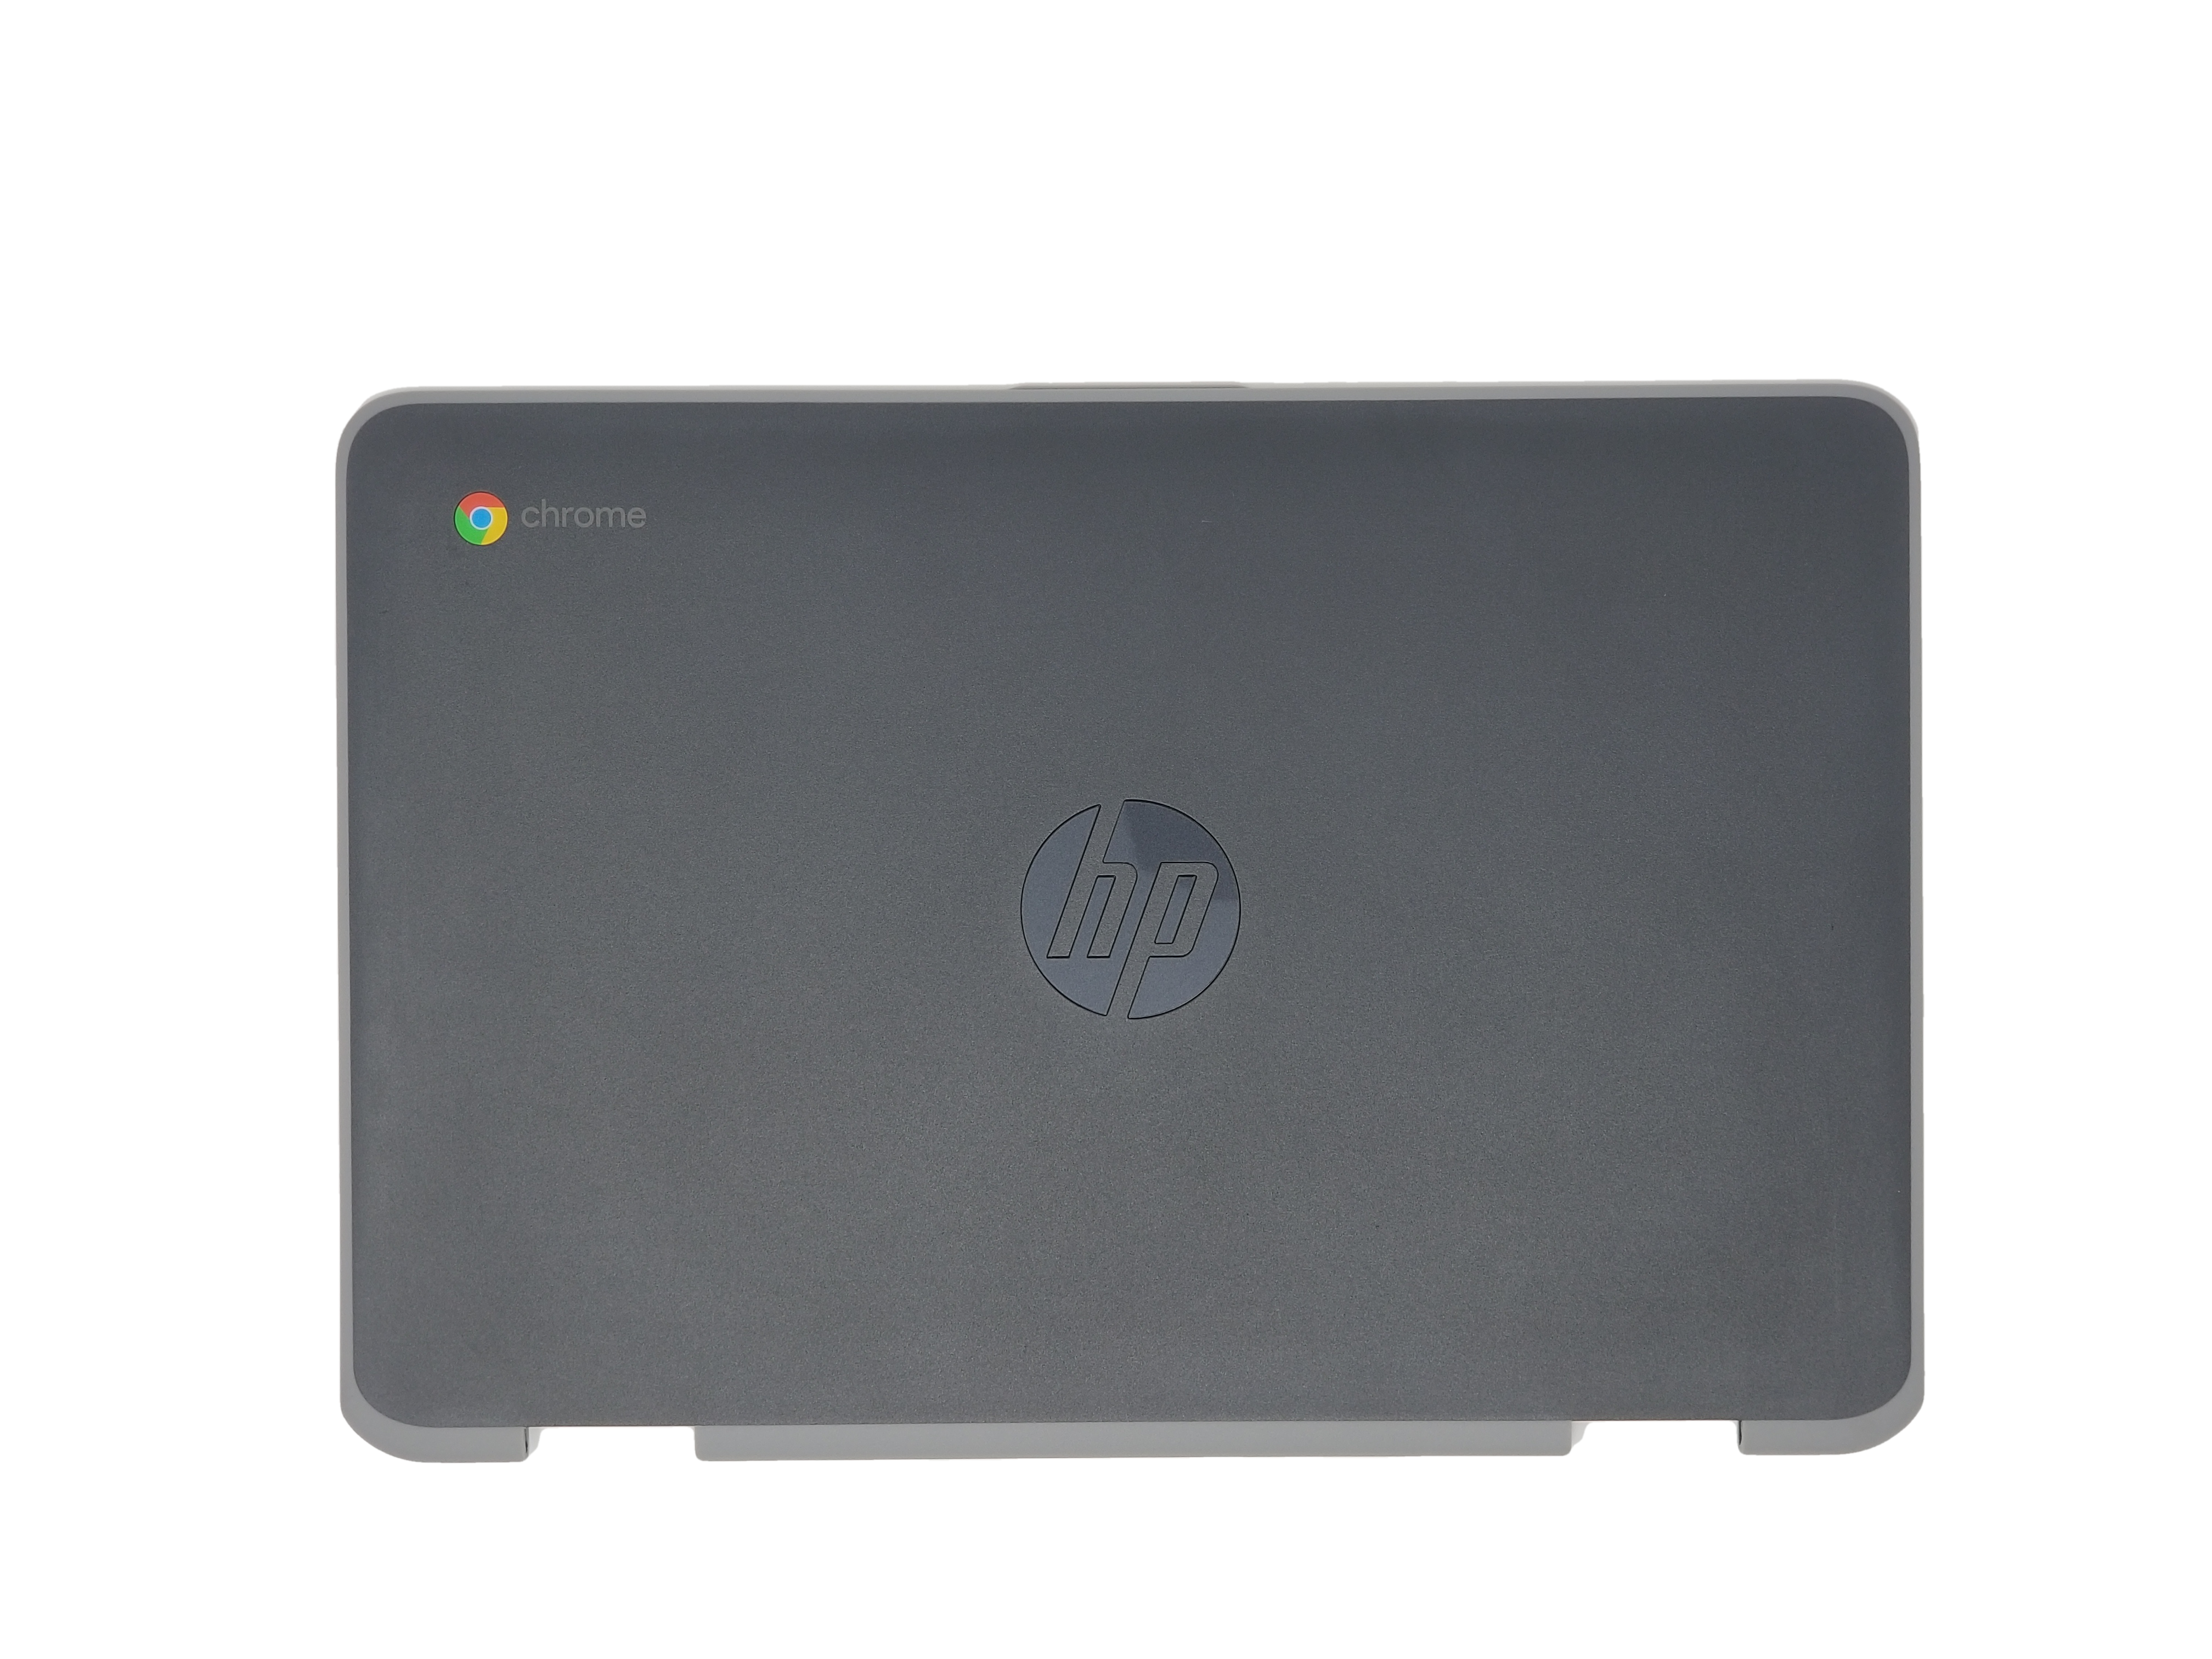 HP CHROMEBOOK X360 11 G1 EE LCD Back Cover (Grey) - 928078-001 / 938154-001